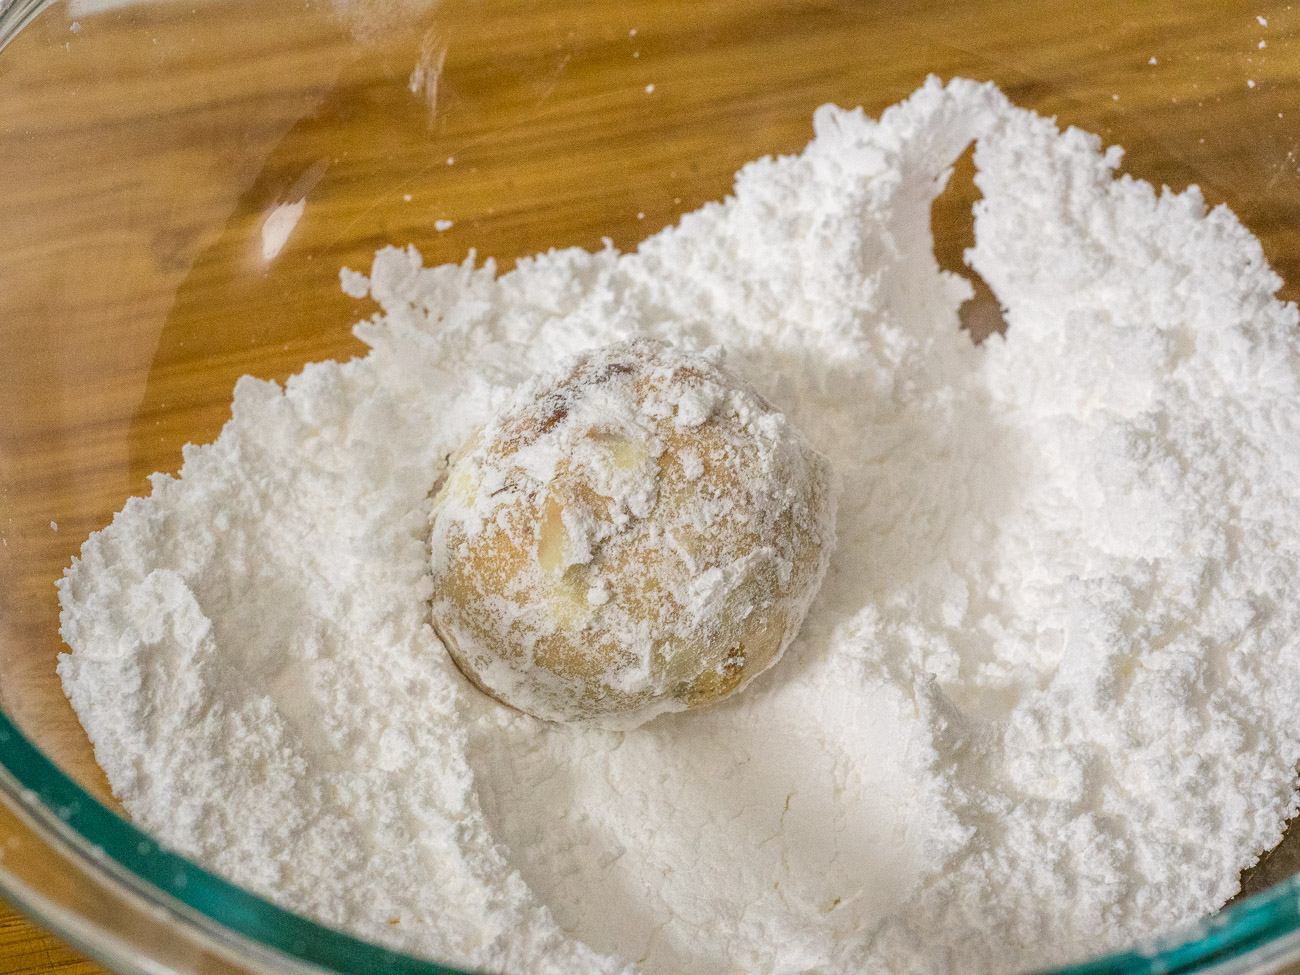 Add powdered sugar to a small bowl. Allow cookies to cool for 5 minutes and then roll each one in powdered sugar.